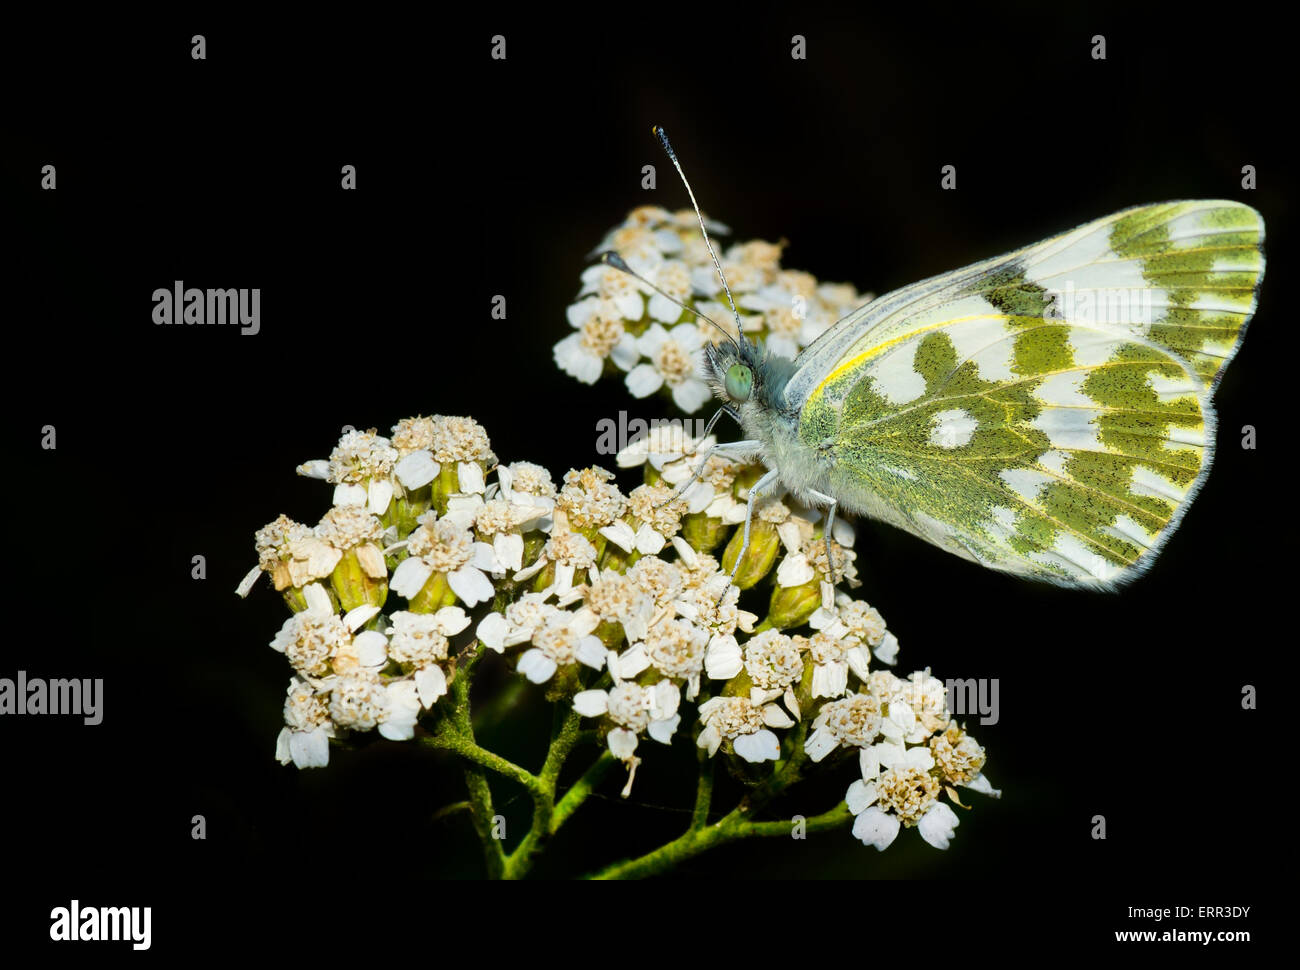 Beautiful butterfly on a wild flowers at night stock photo 83486199 beautiful butterfly on a wild flowers at night izmirmasajfo